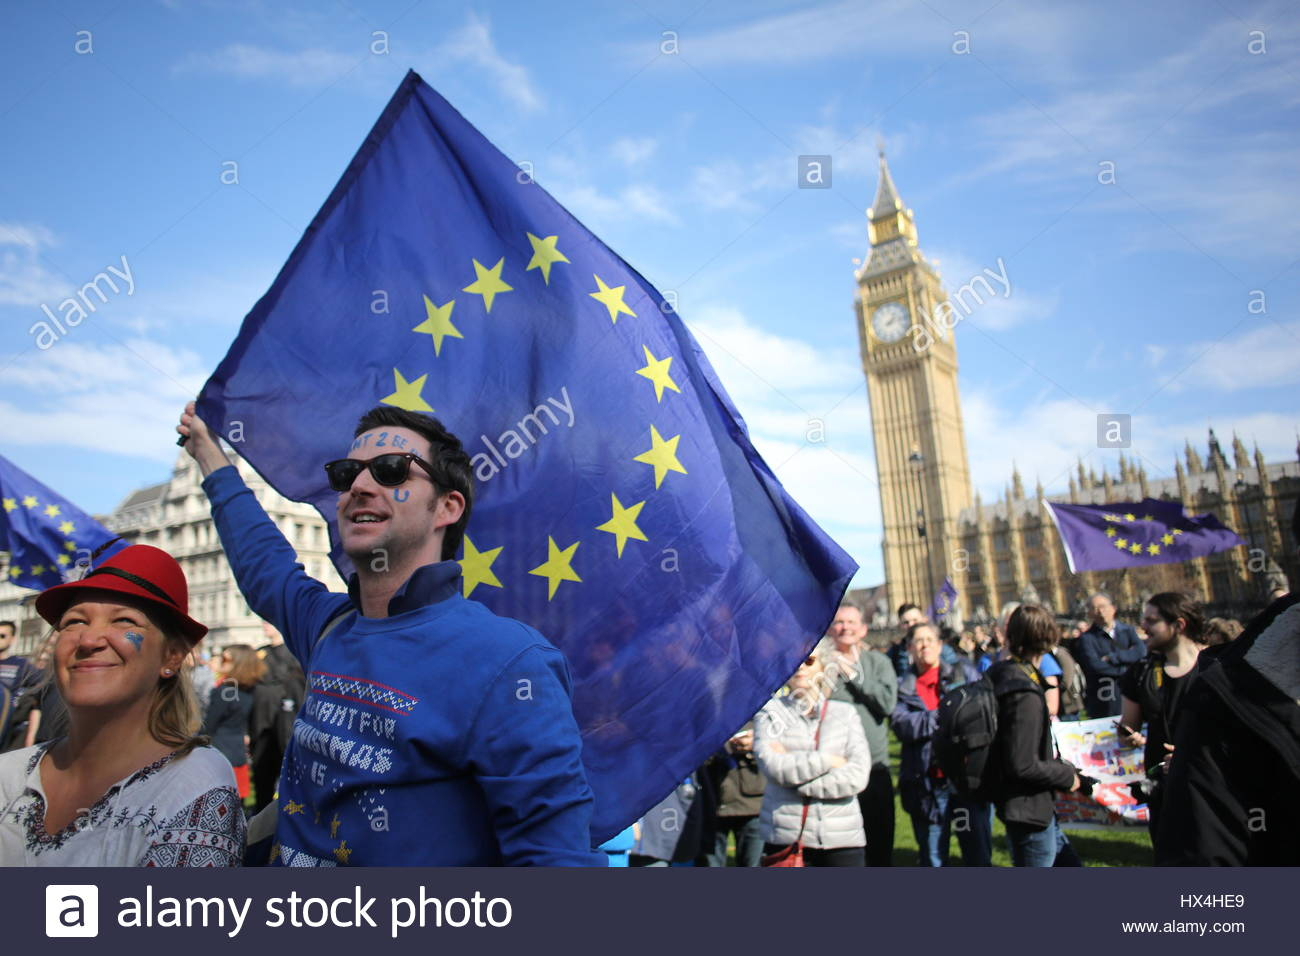 London, UK. 25th Mar, 2017. Unite for Europe rally, London, Great Britain Credit: reallifephotos/Alamy Live News - Stock Image